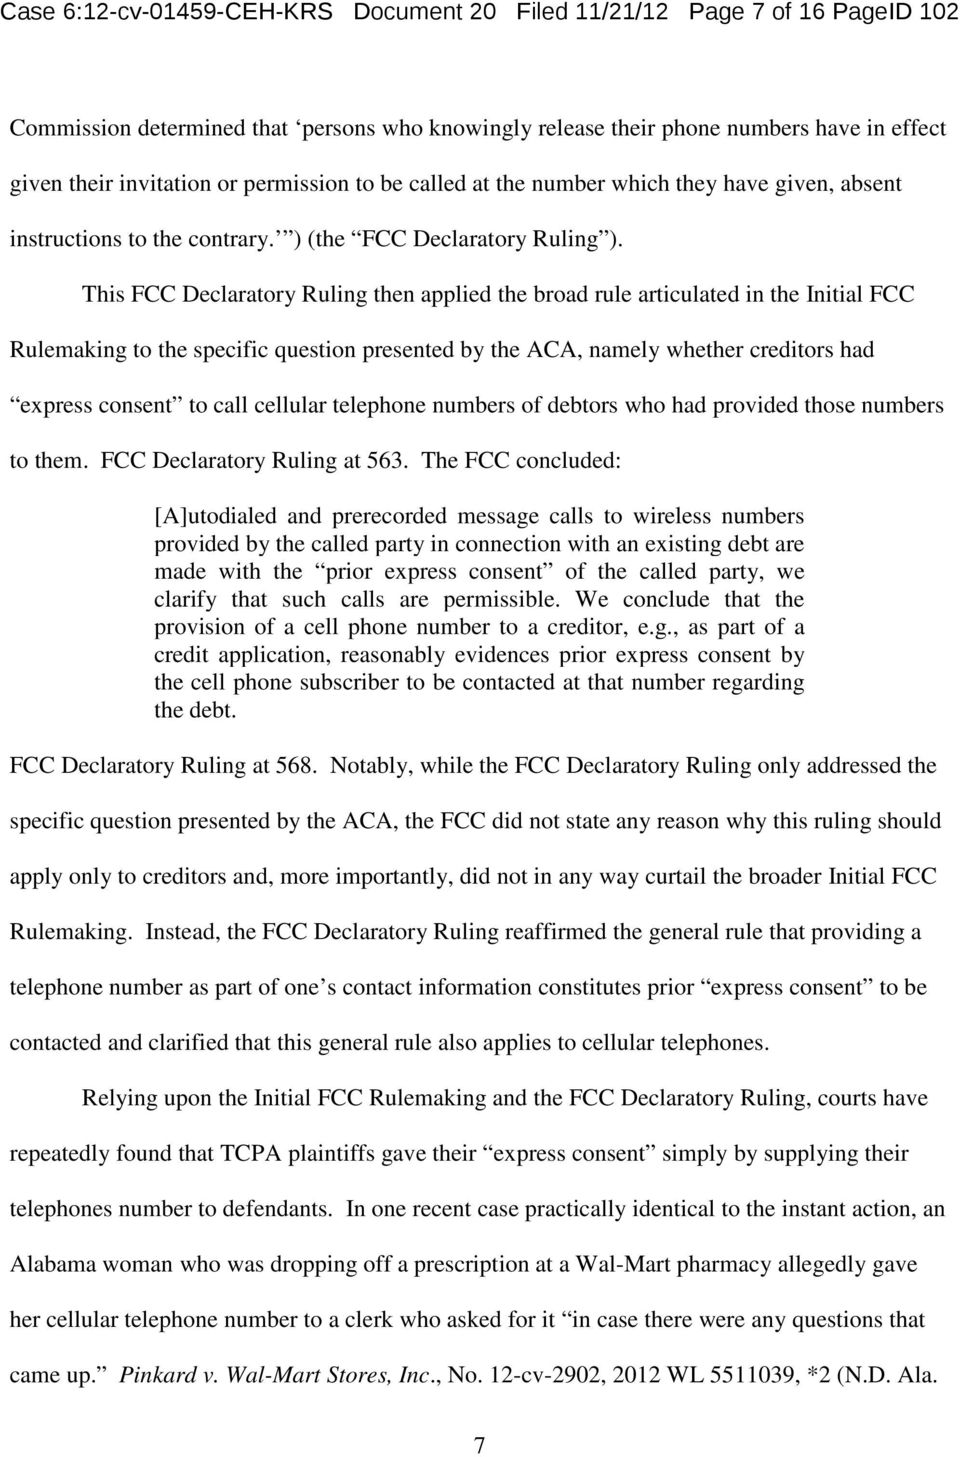 This FCC Declaratory Ruling then applied the broad rule articulated in the Initial FCC Rulemaking to the specific question presented by the ACA, namely whether creditors had express consent to call